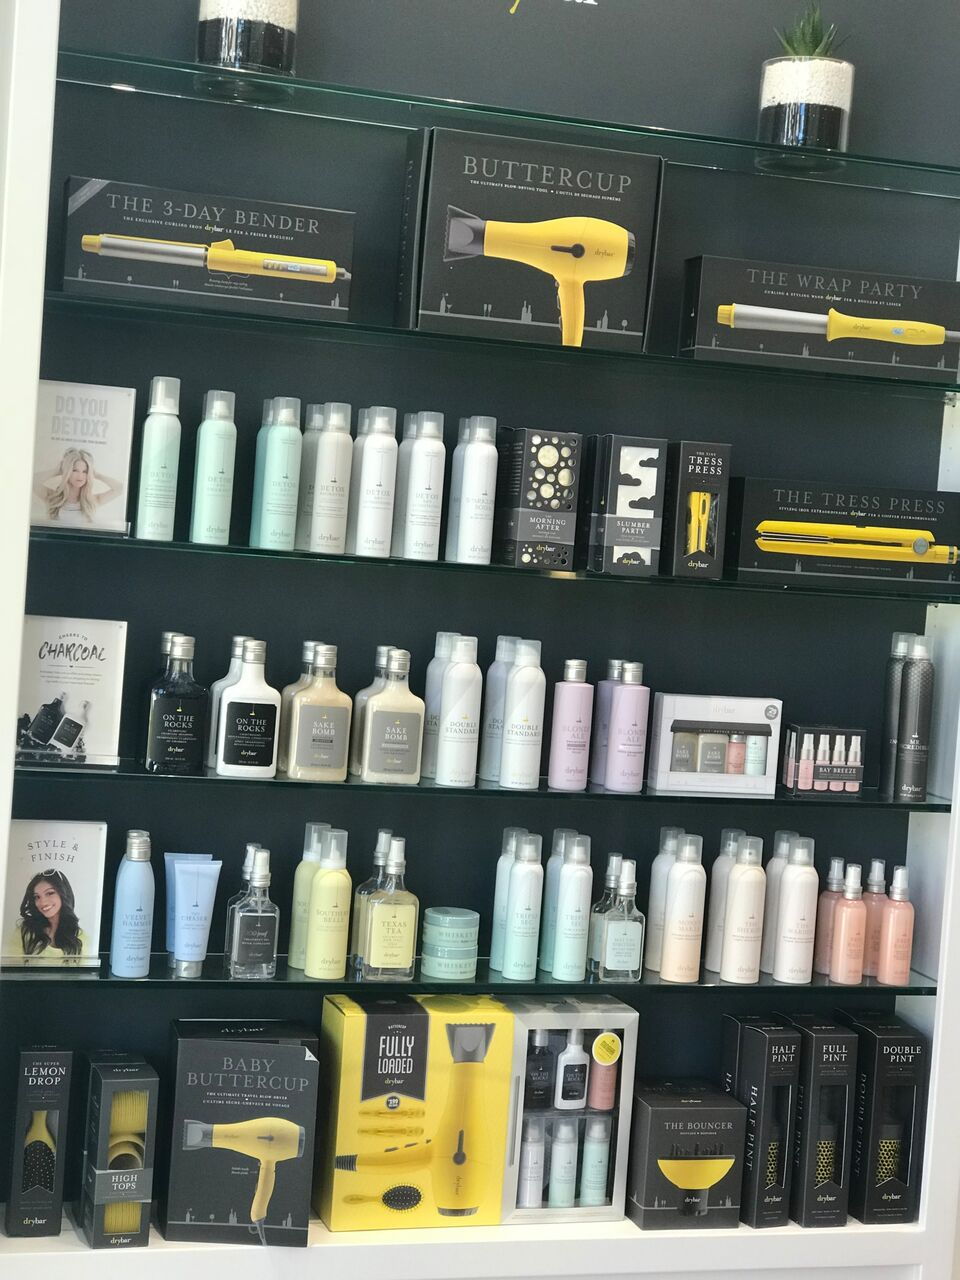 Drybar Park Meadows review featured by popular life and style Denver blogger, All Things Lovely